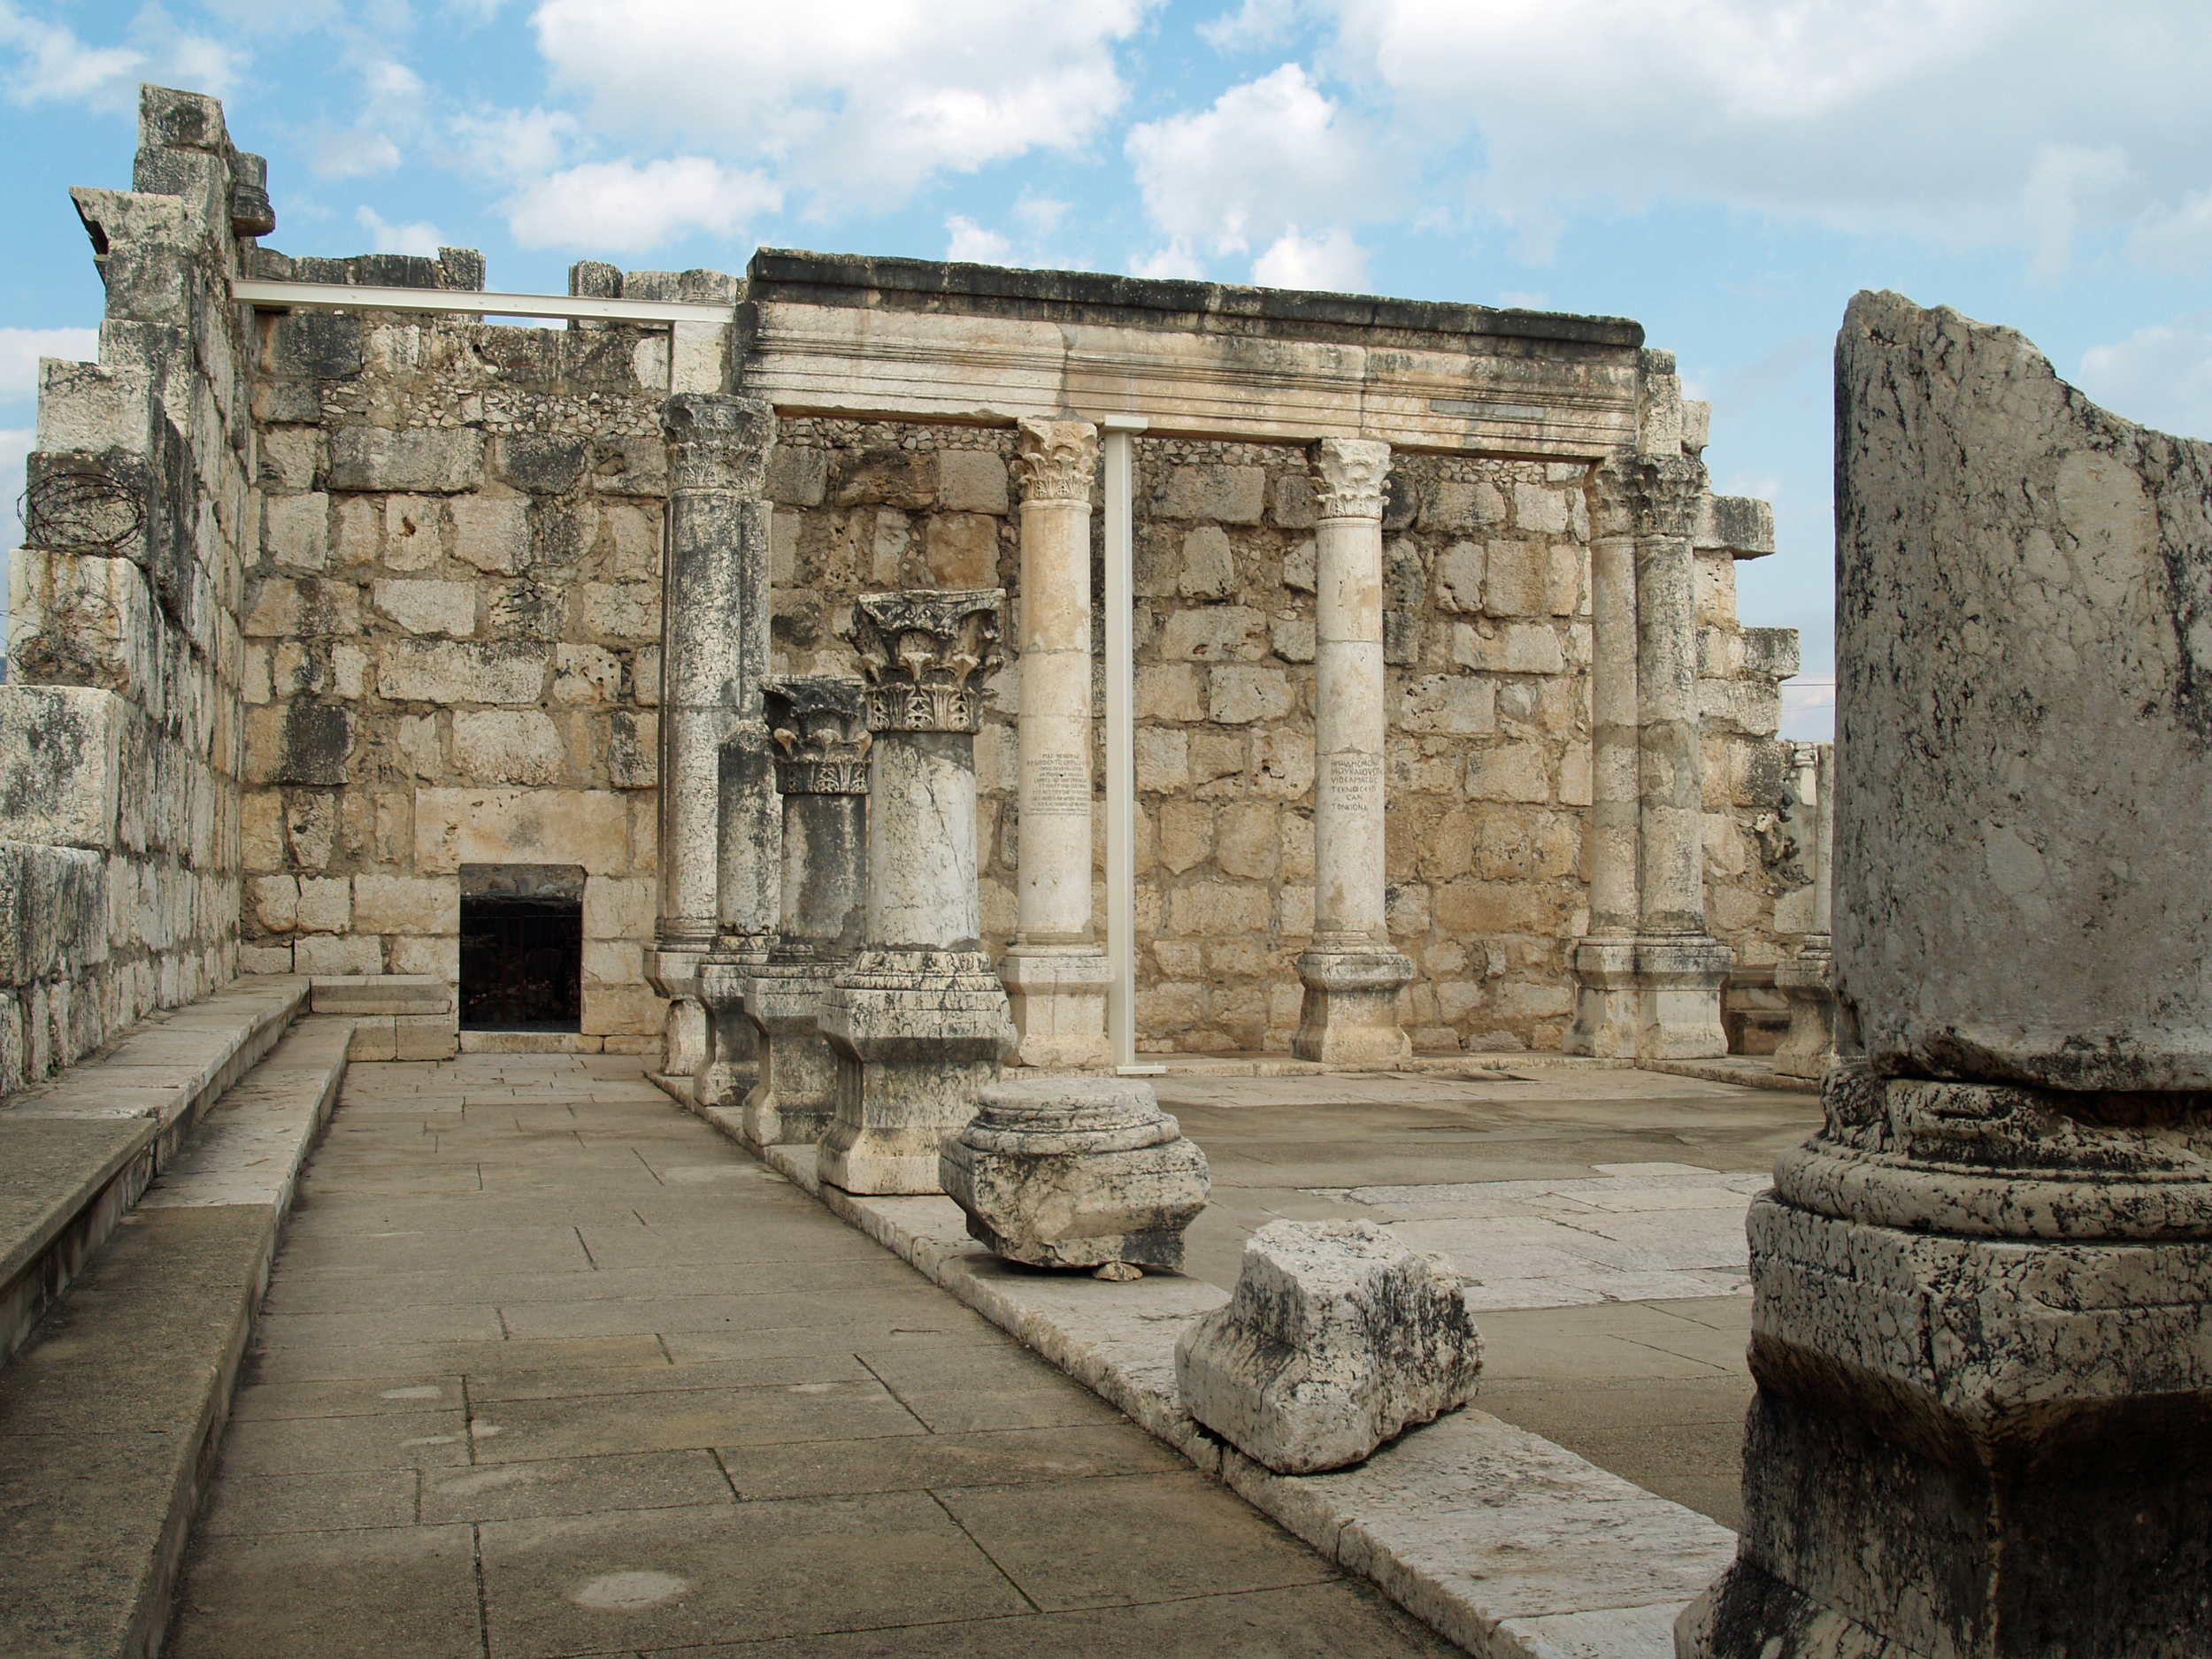 Capernaum_synagogue_by_David_Shankbone.jpg